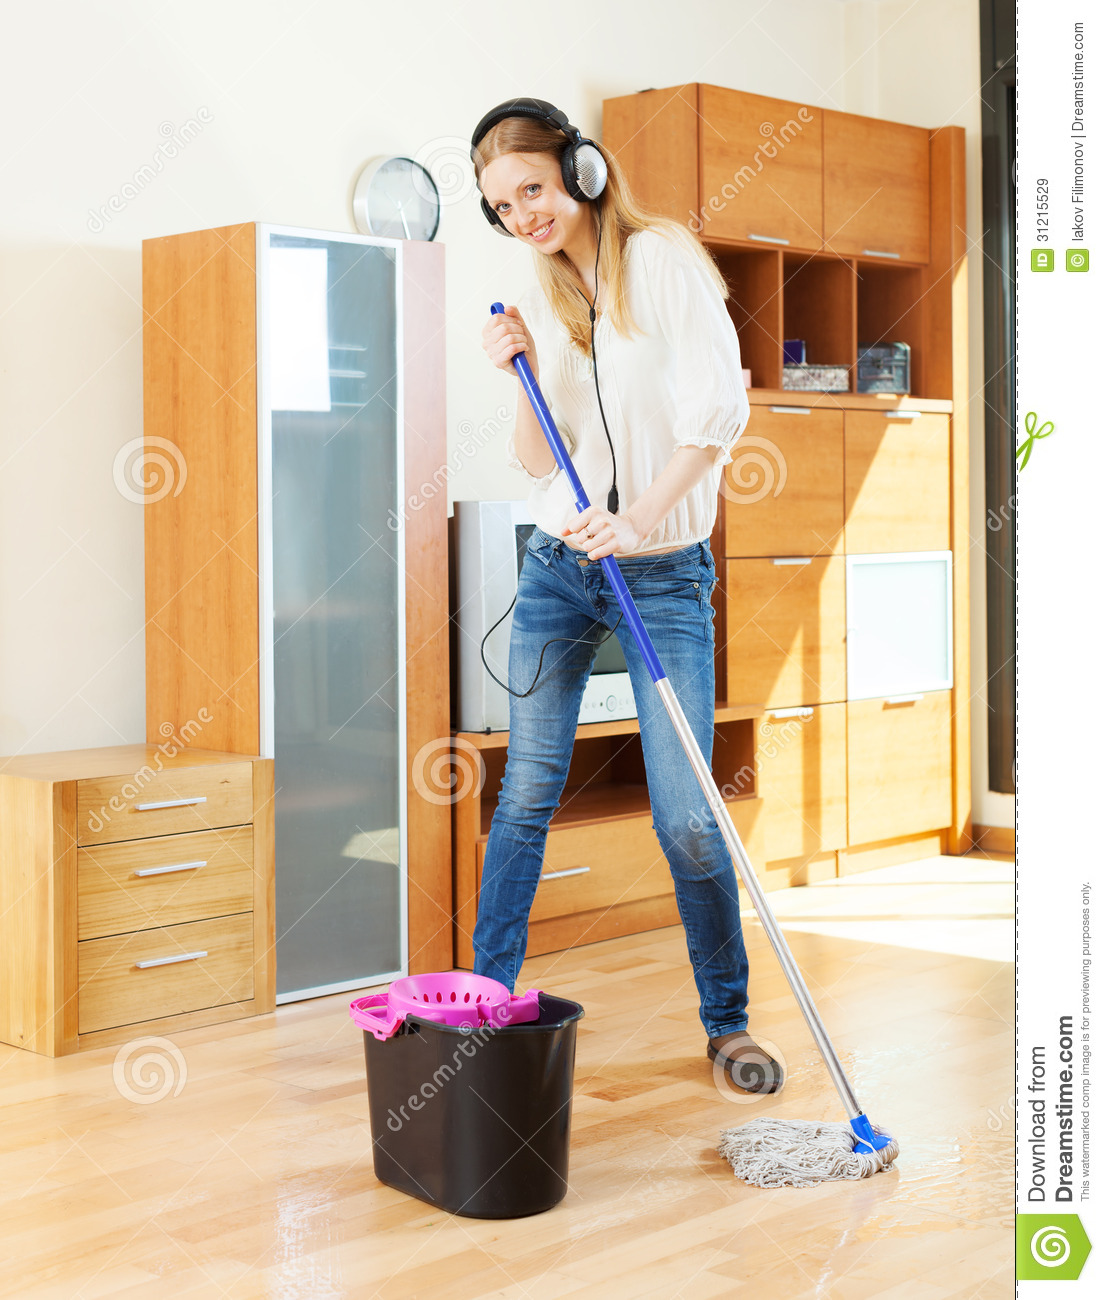 girl in headphones washing floor with mop royalty free girl listening to music clipart person listening to music clipart